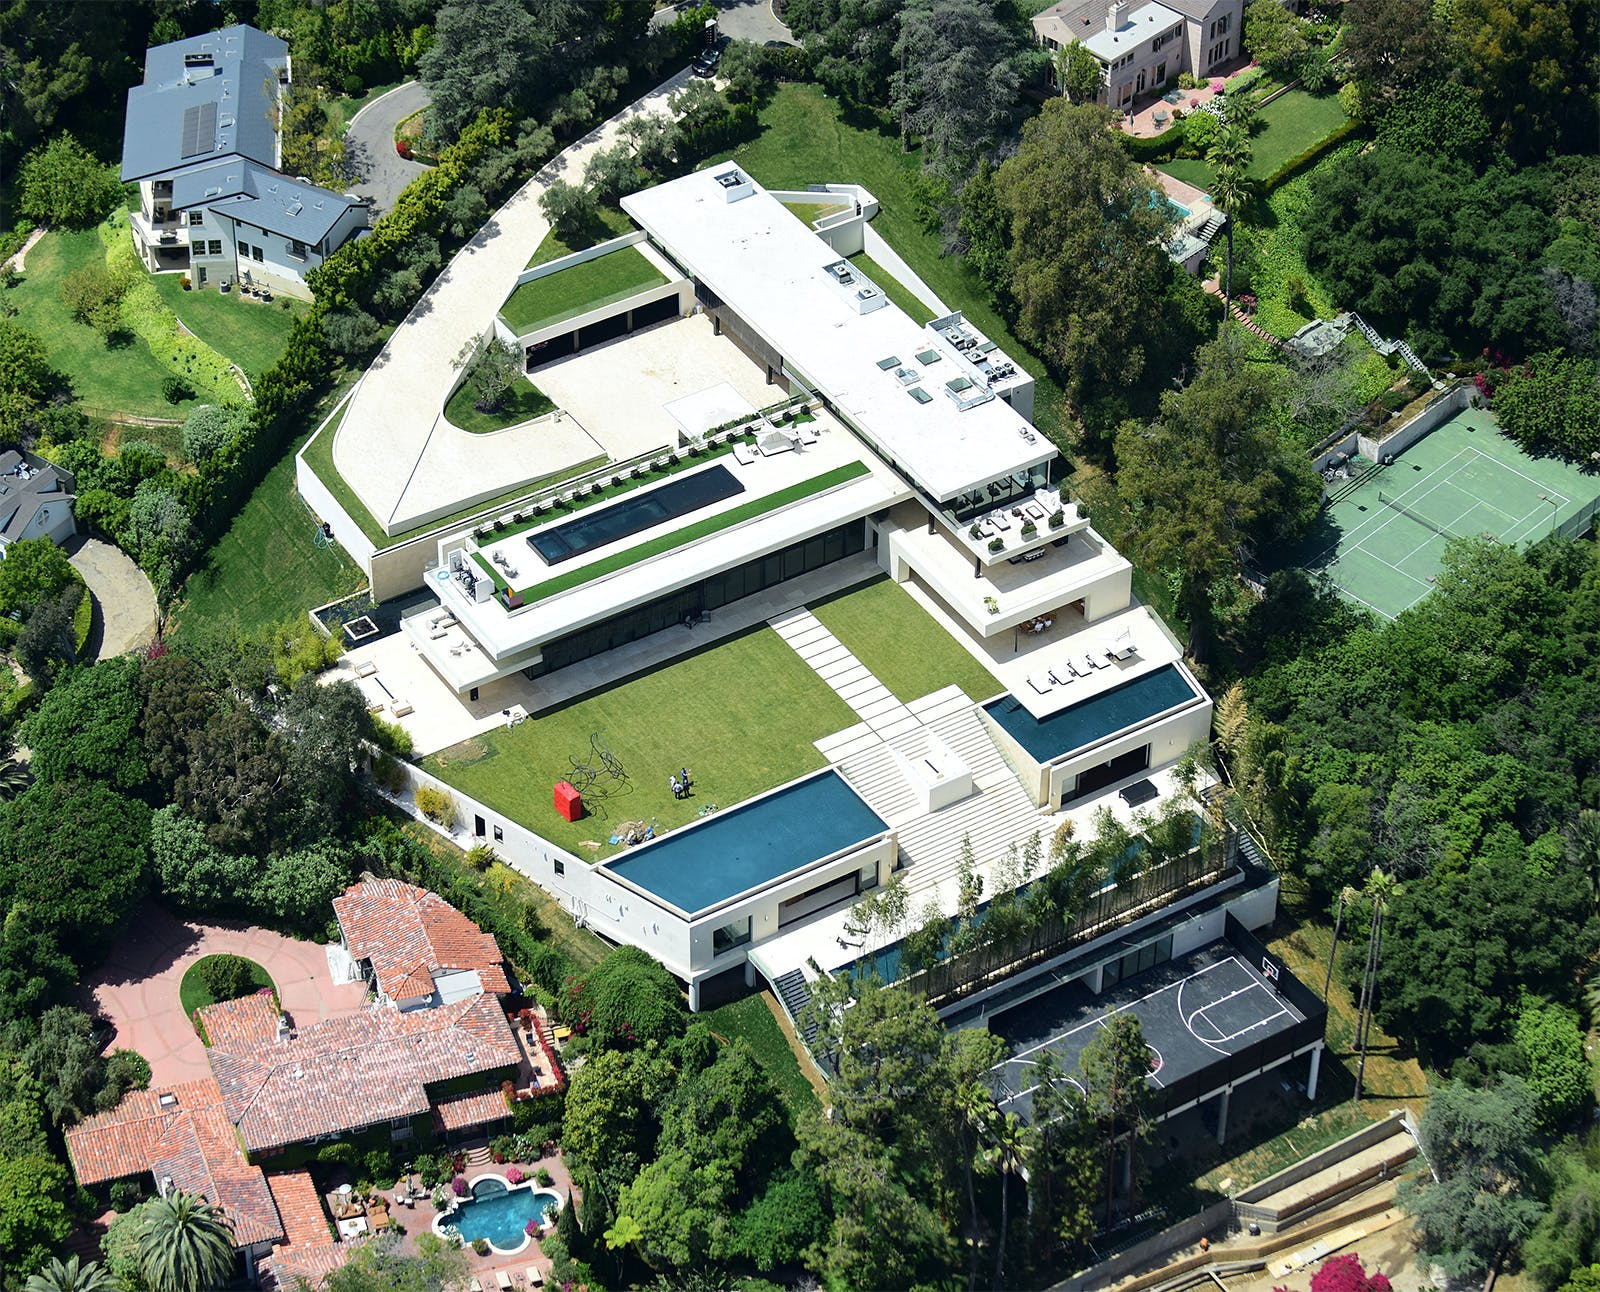 Beyoncé And Jay Z S New Paul Mcclean Designed Bel Air Pad Ranks Among The Most